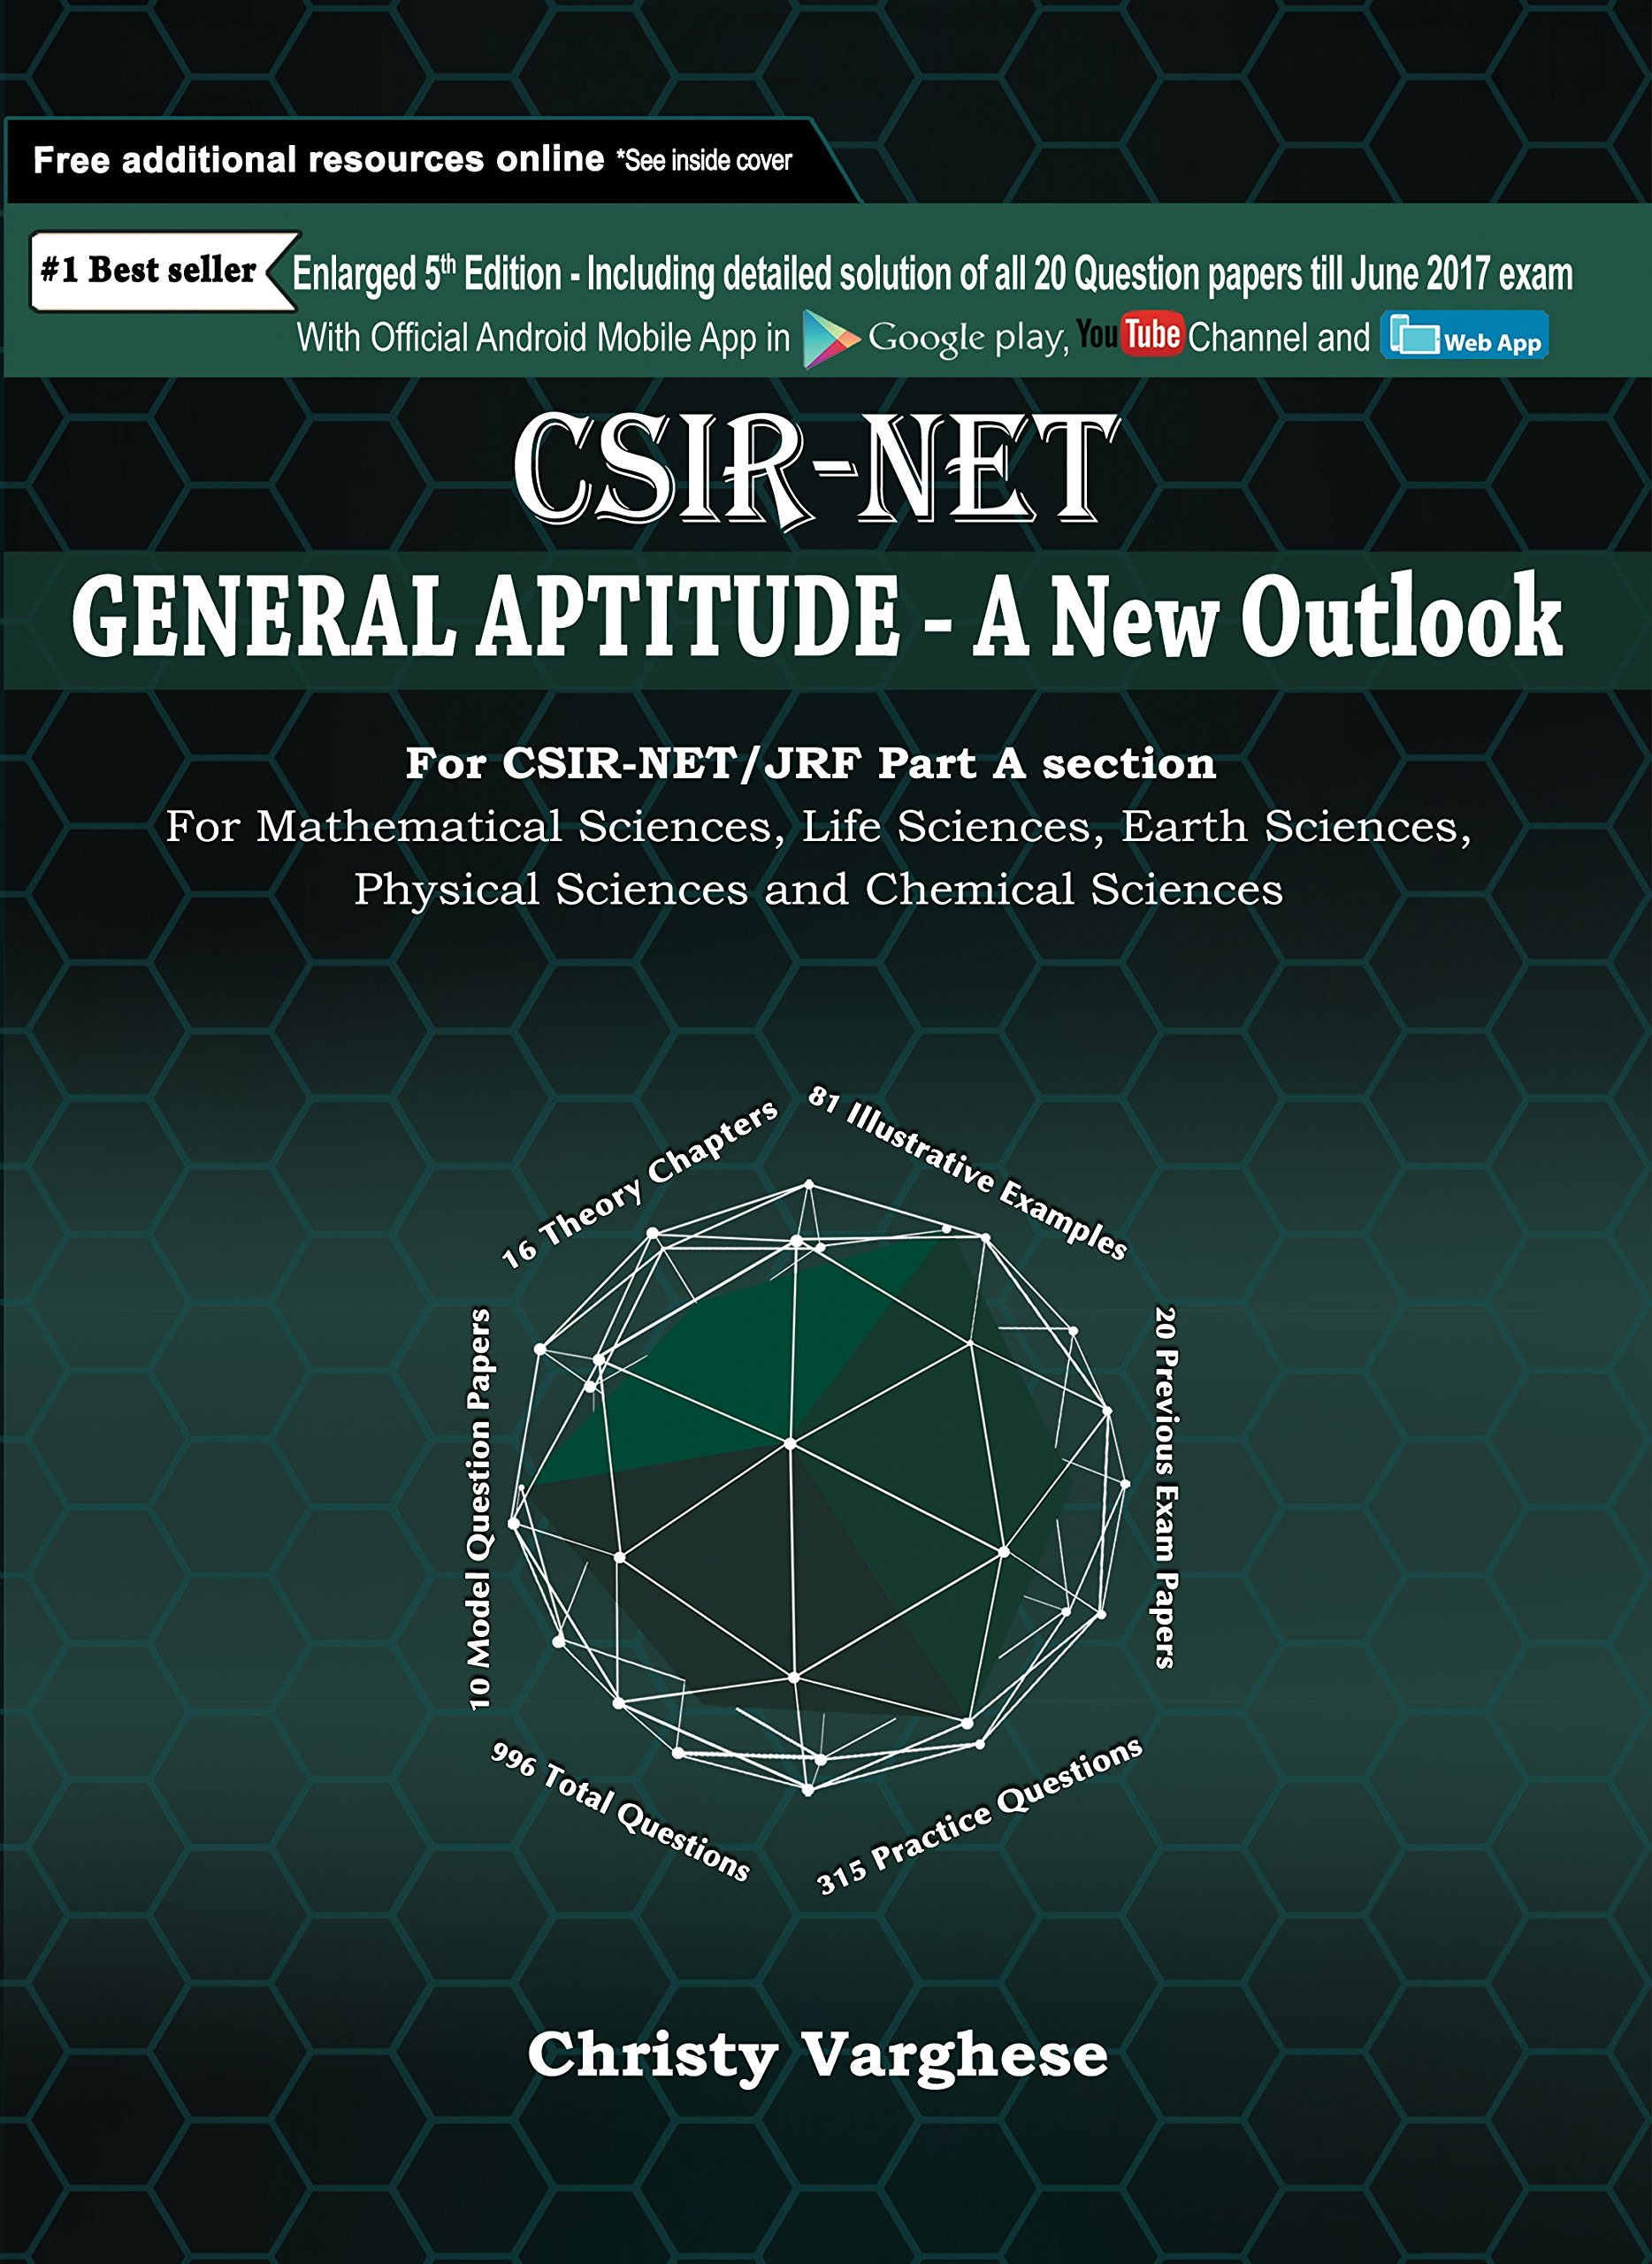 buy csir net general aptitude a new outlook book online at low